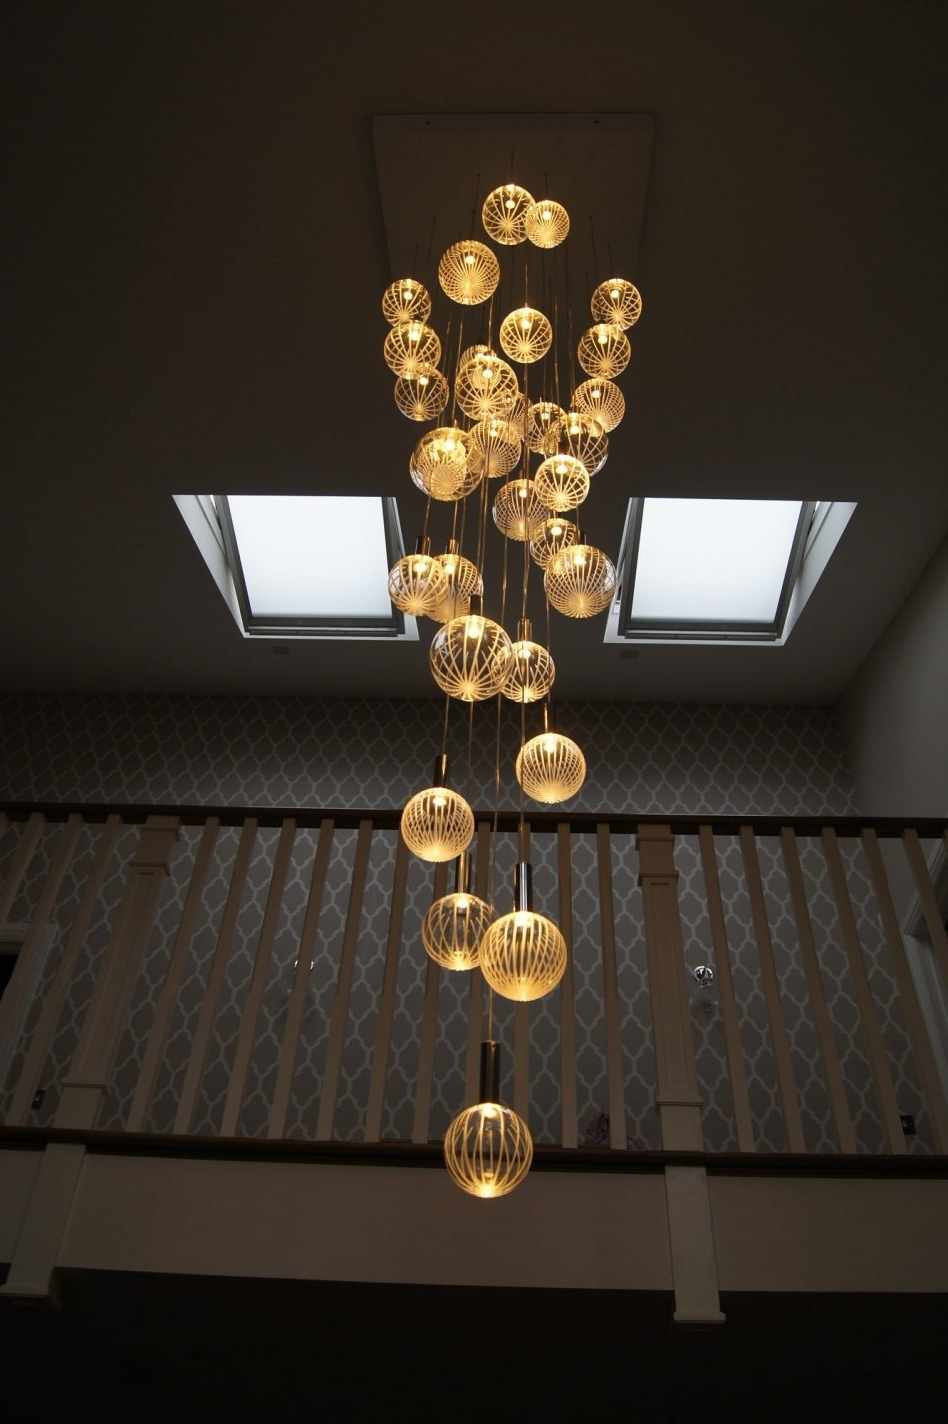 Extra Large Chandelier Lighting with Most Recent Branch Chandeliers Colored Chandelier Led Ceiling For  Large